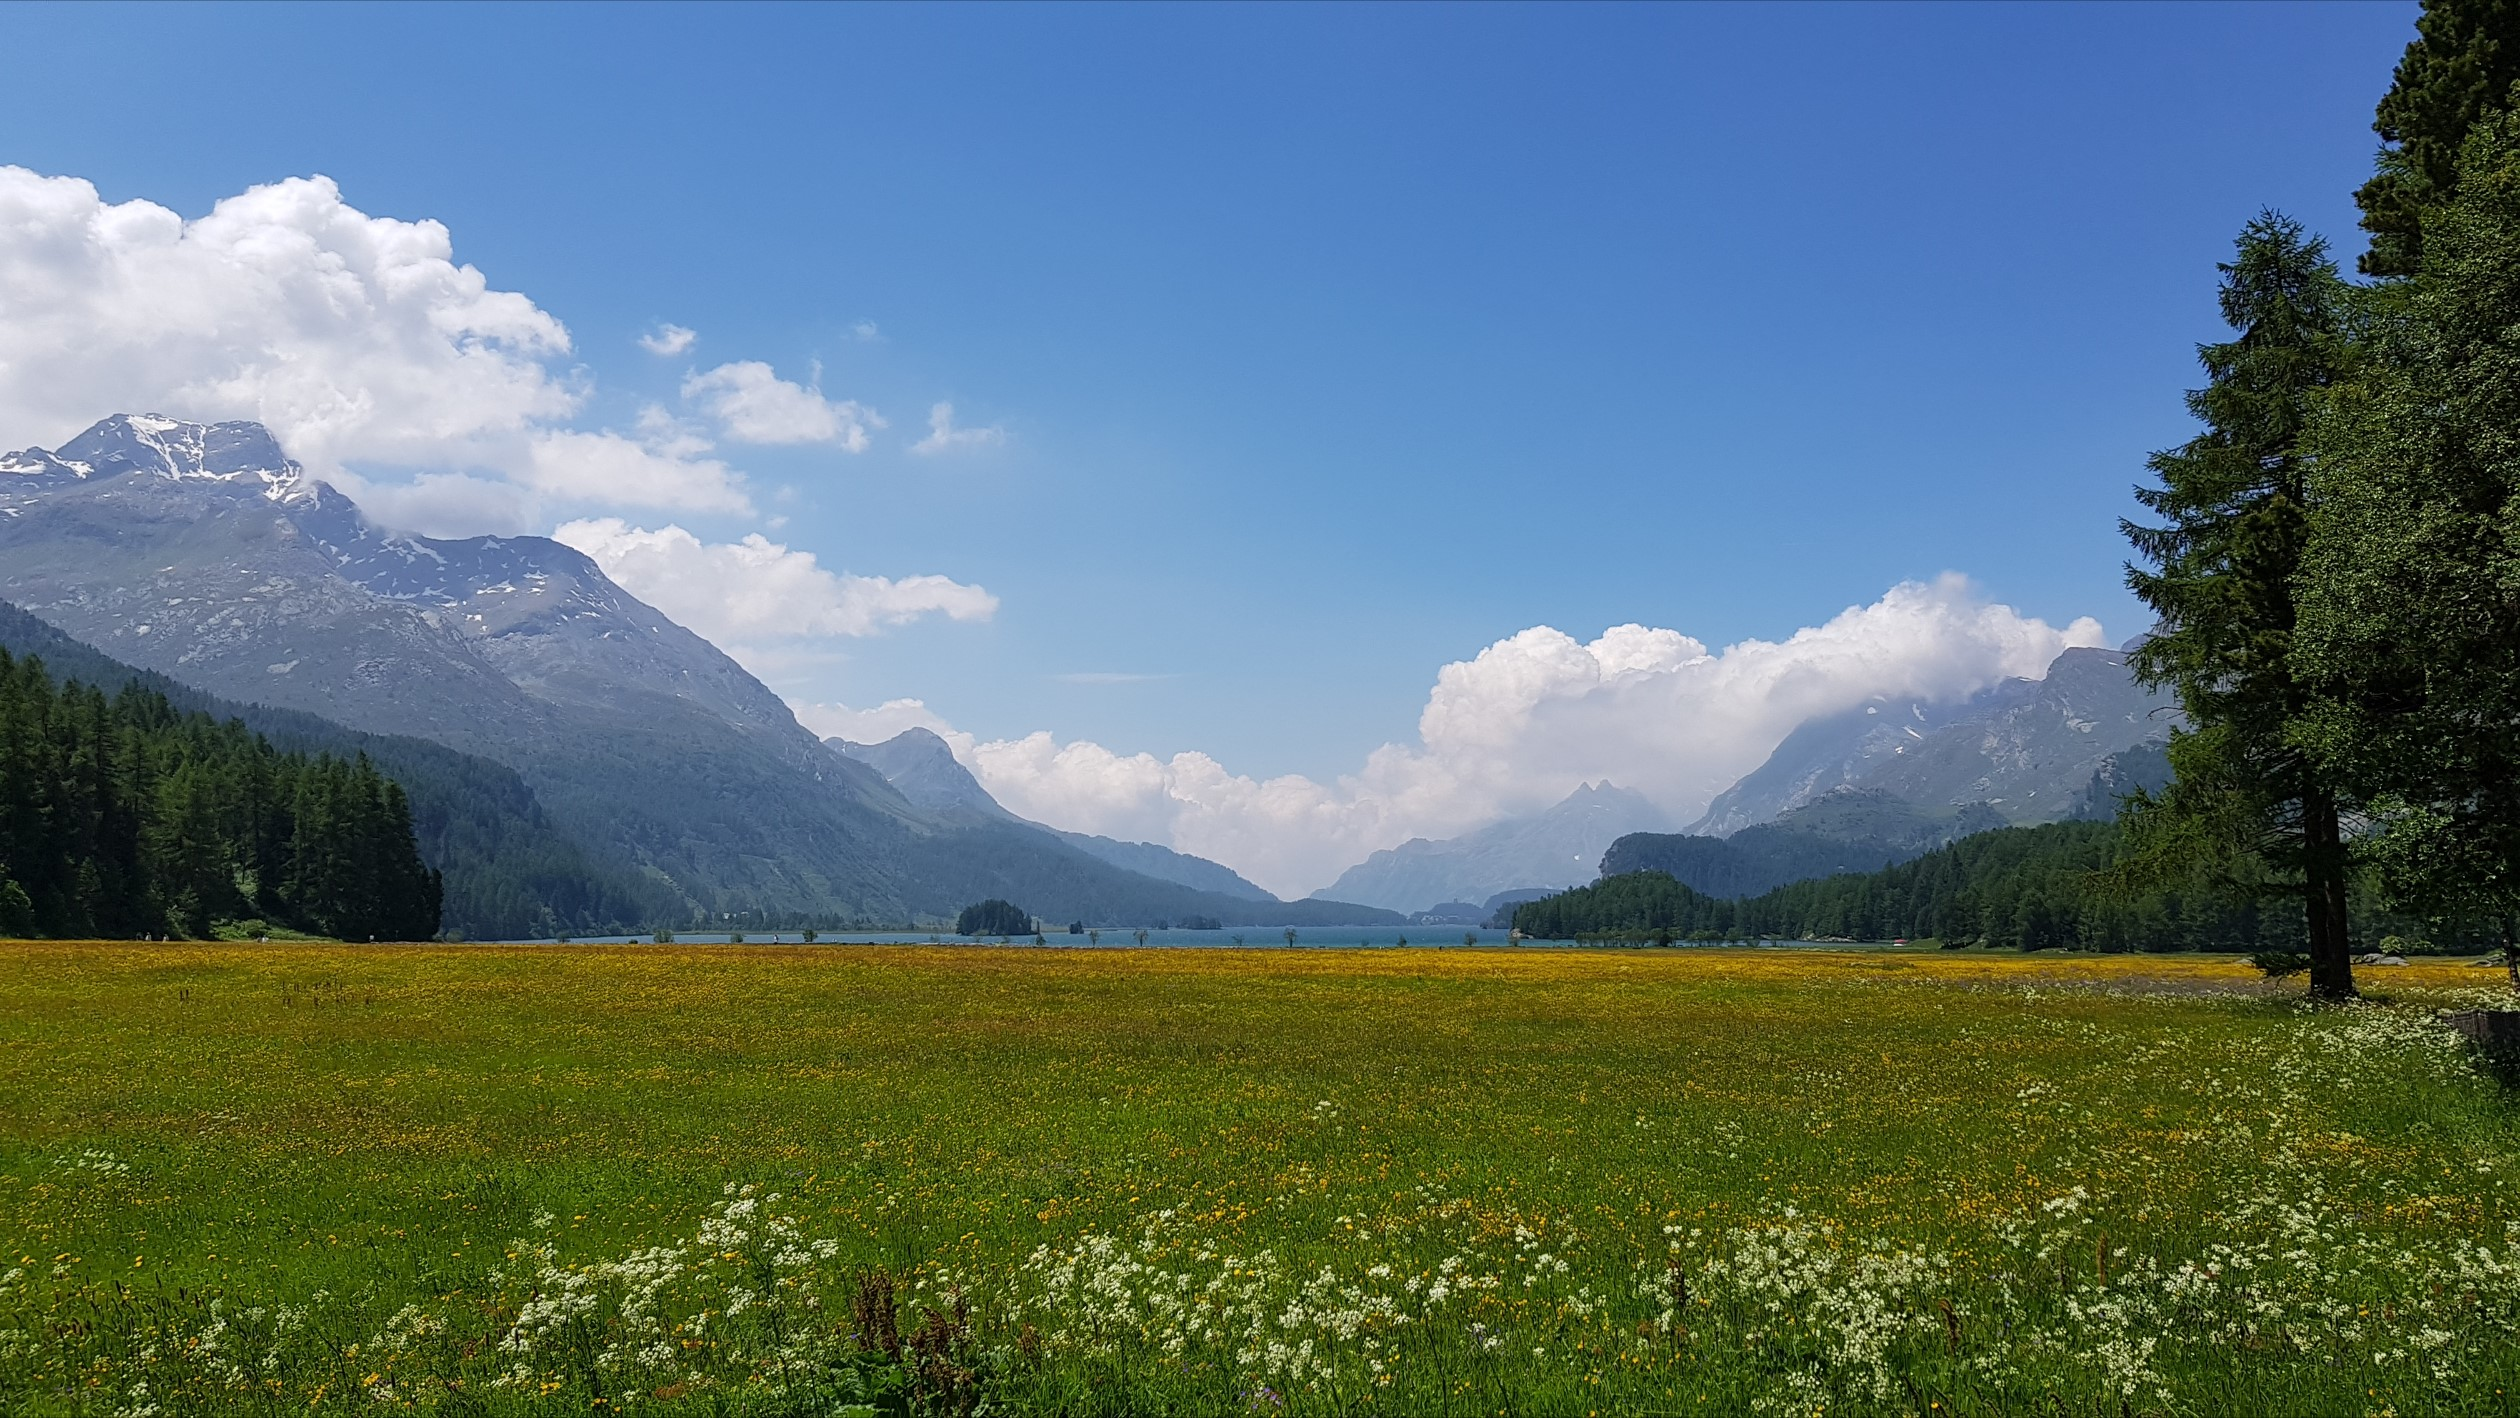 Engadine, Sils Segl Baselgia, view in direction Maloja, Isola with Chaviolas, Chaste, Silsersee